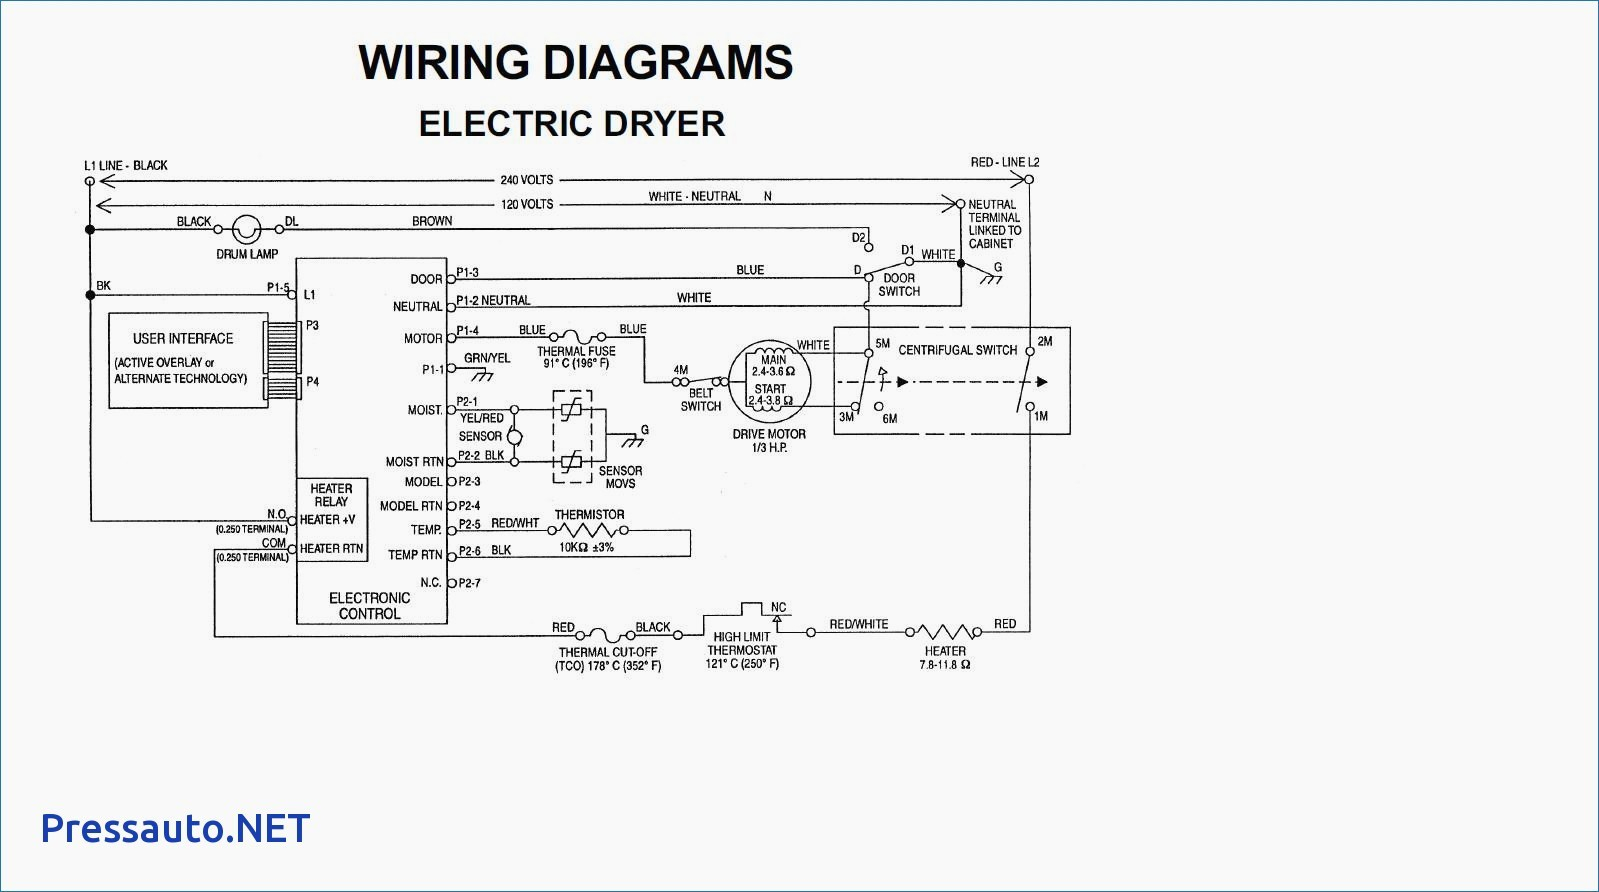 hight resolution of dryer motor wiring diagram search wiring diagram dryer motor wiring diagram 115v x603 wiring diagram sheet